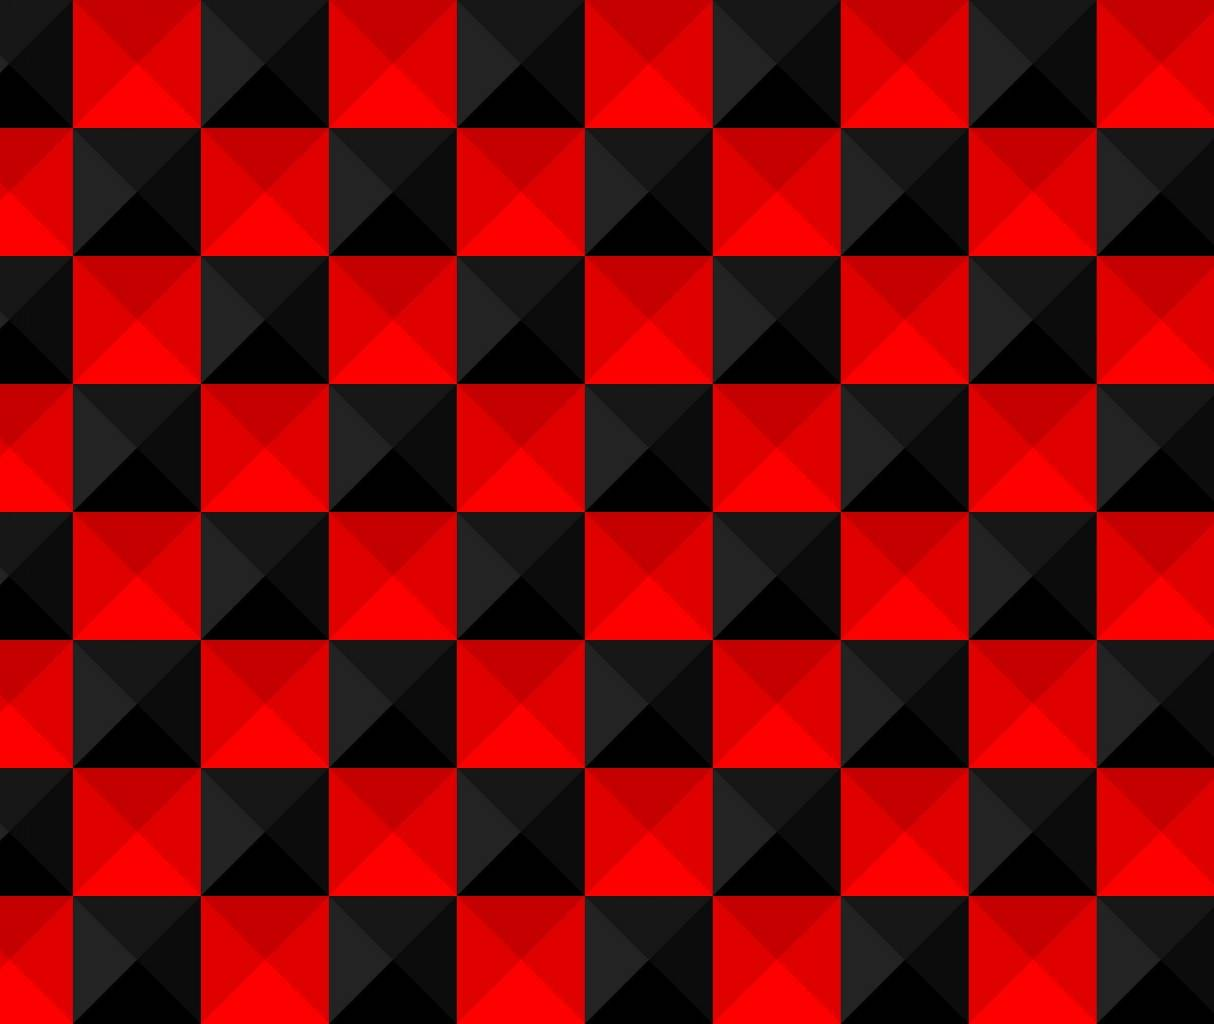 Red Black Square